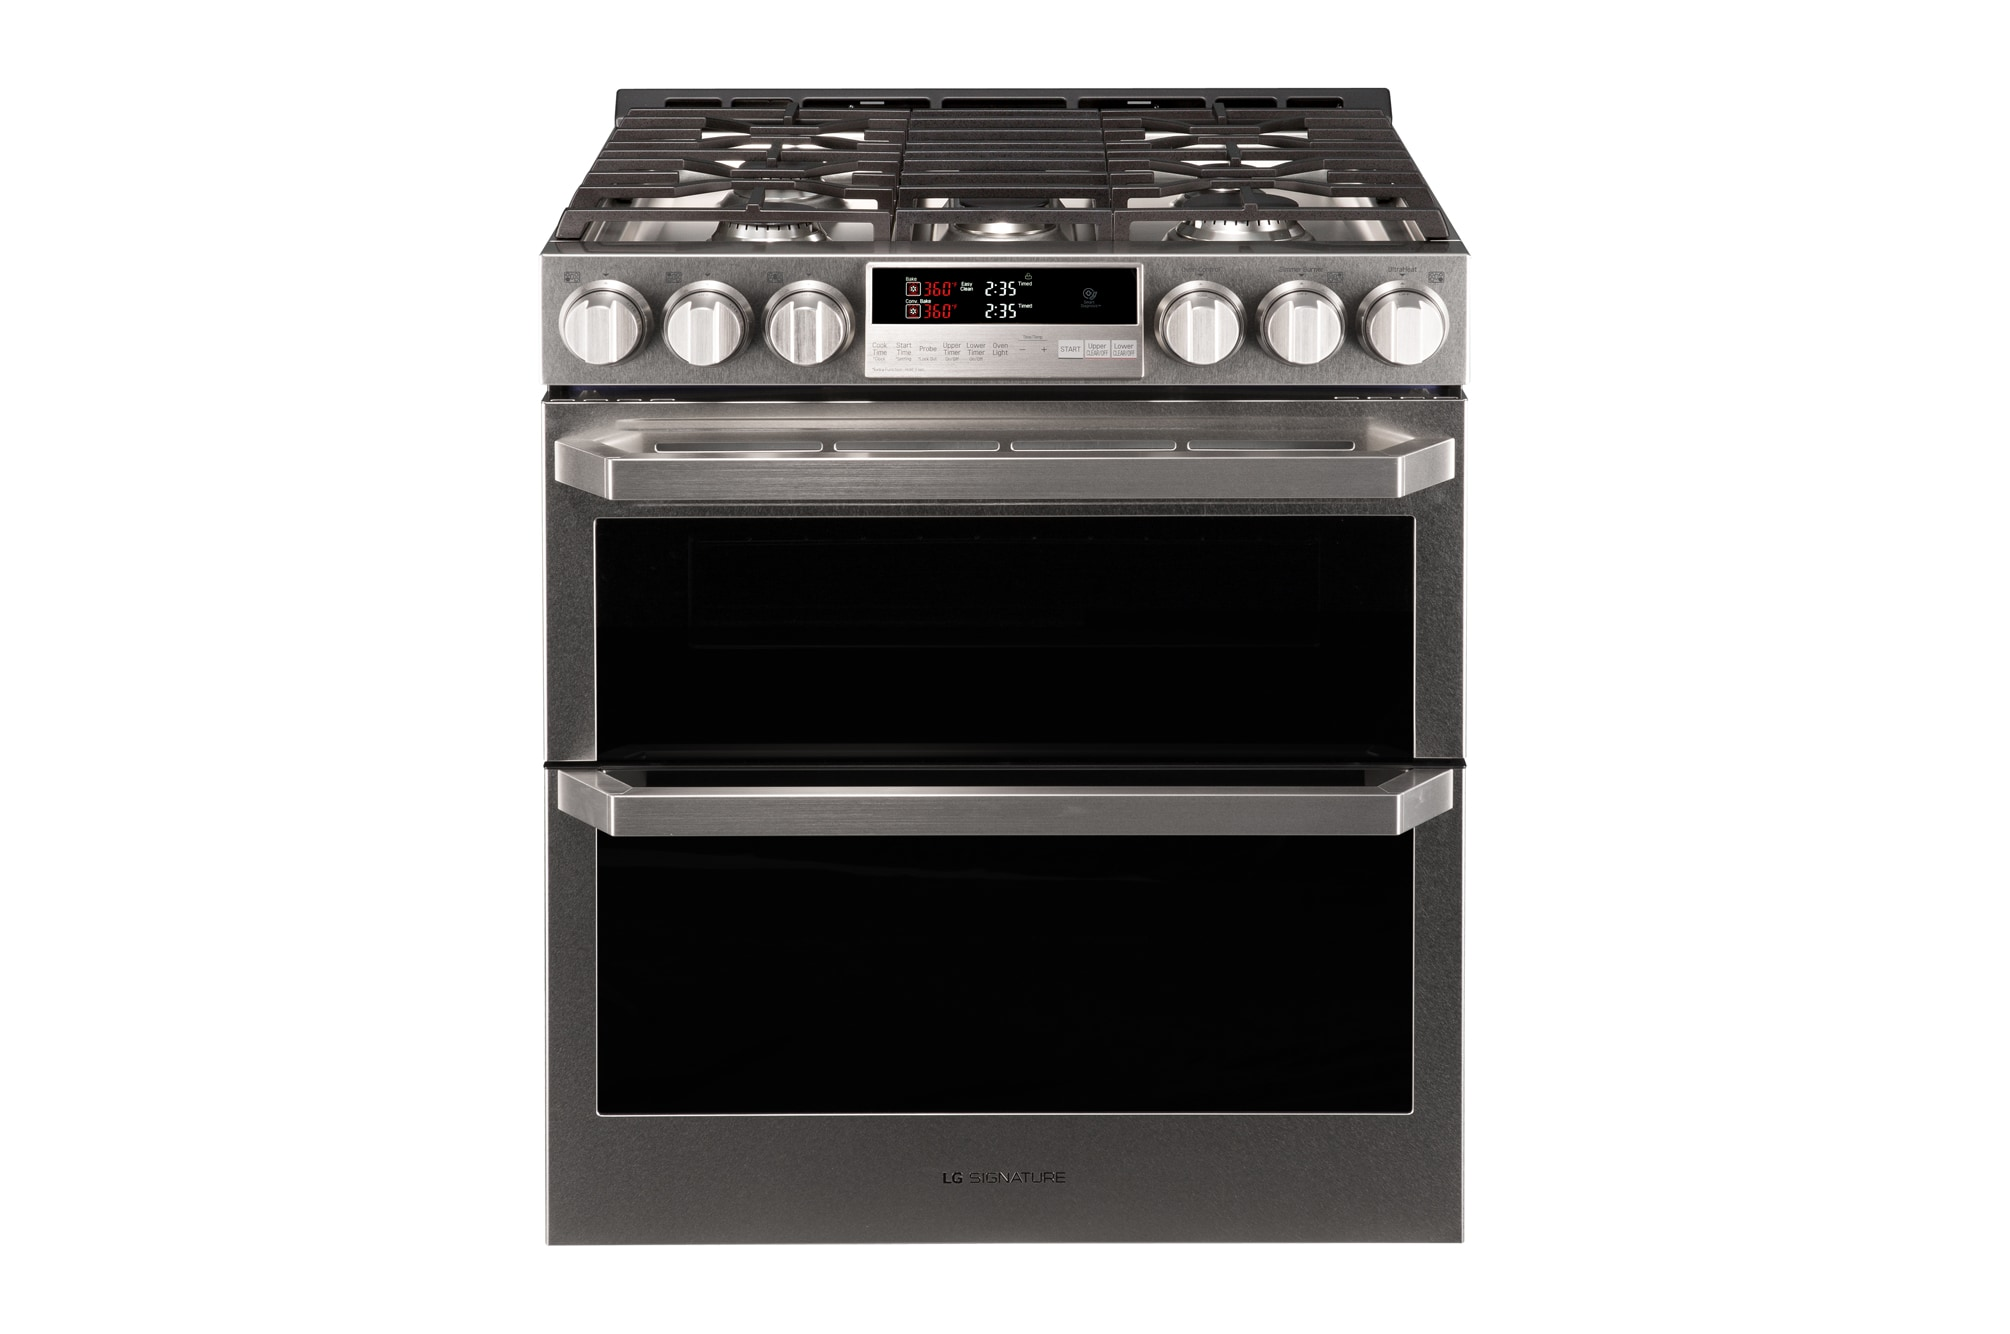 Lg Cooking Liances Lutg4519sn Signature 6 9 Cu Ft Smart Wi Fi Enabled